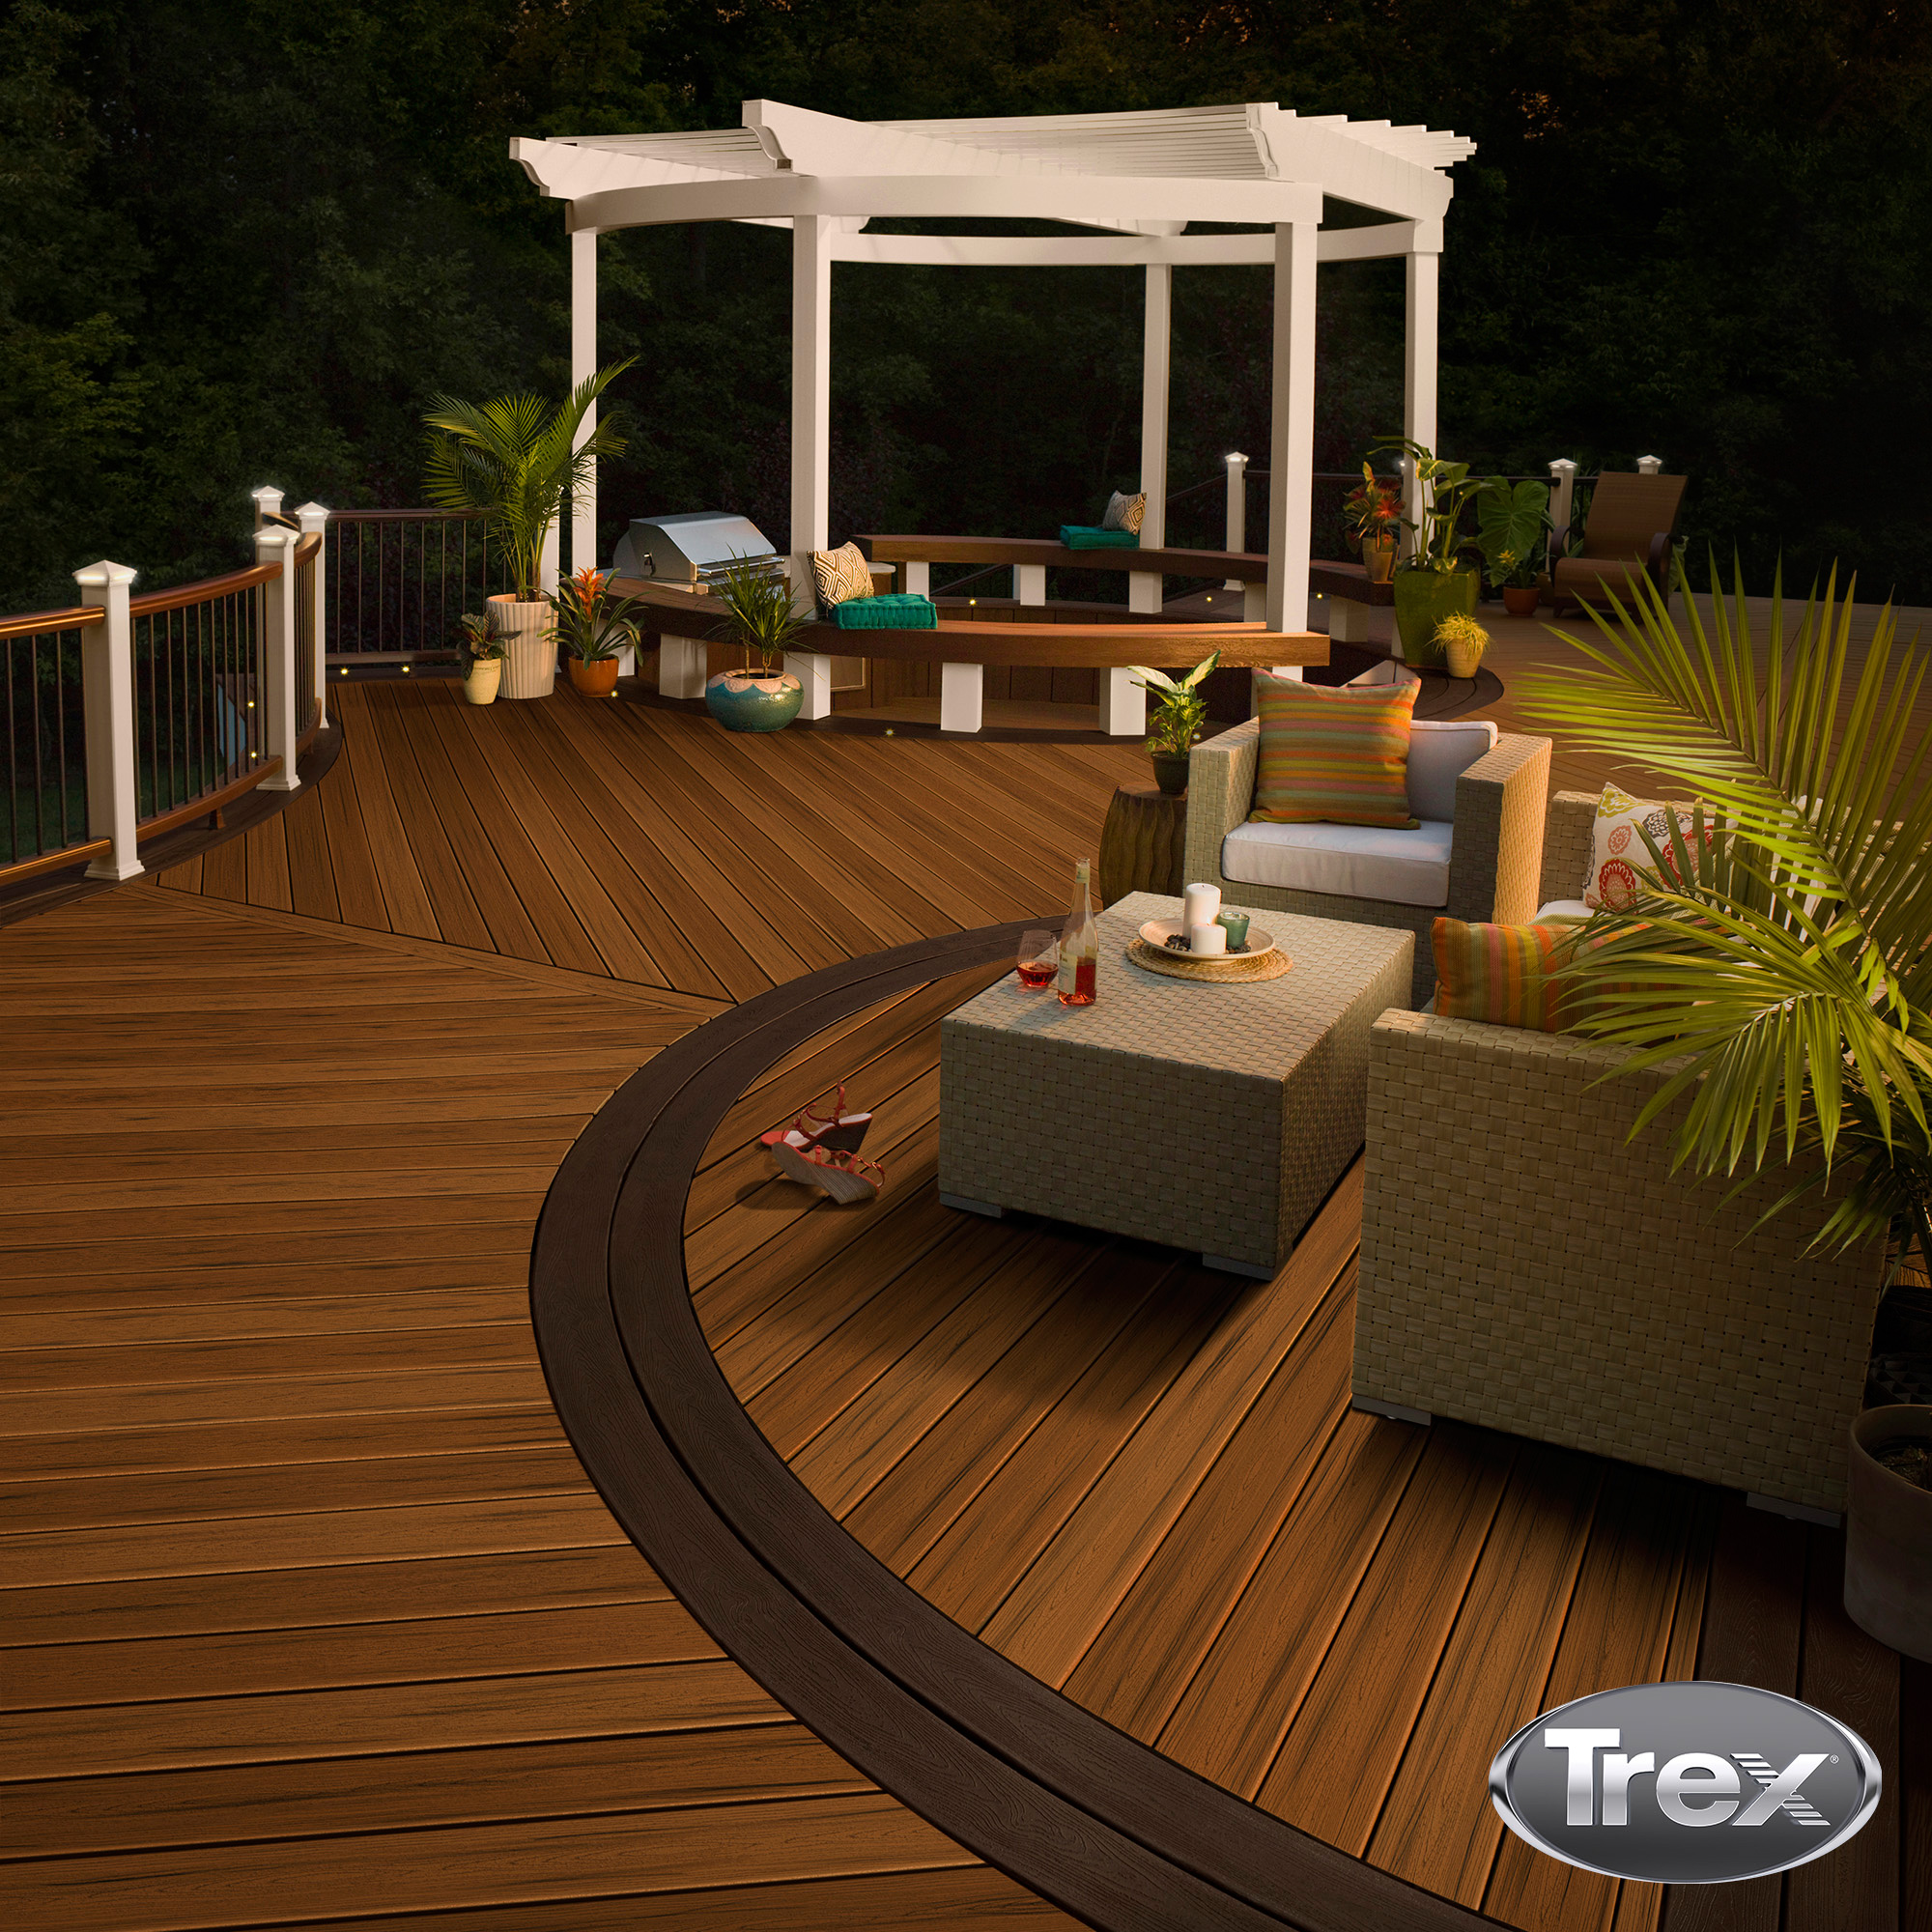 High Style, Low Maintenance Decks